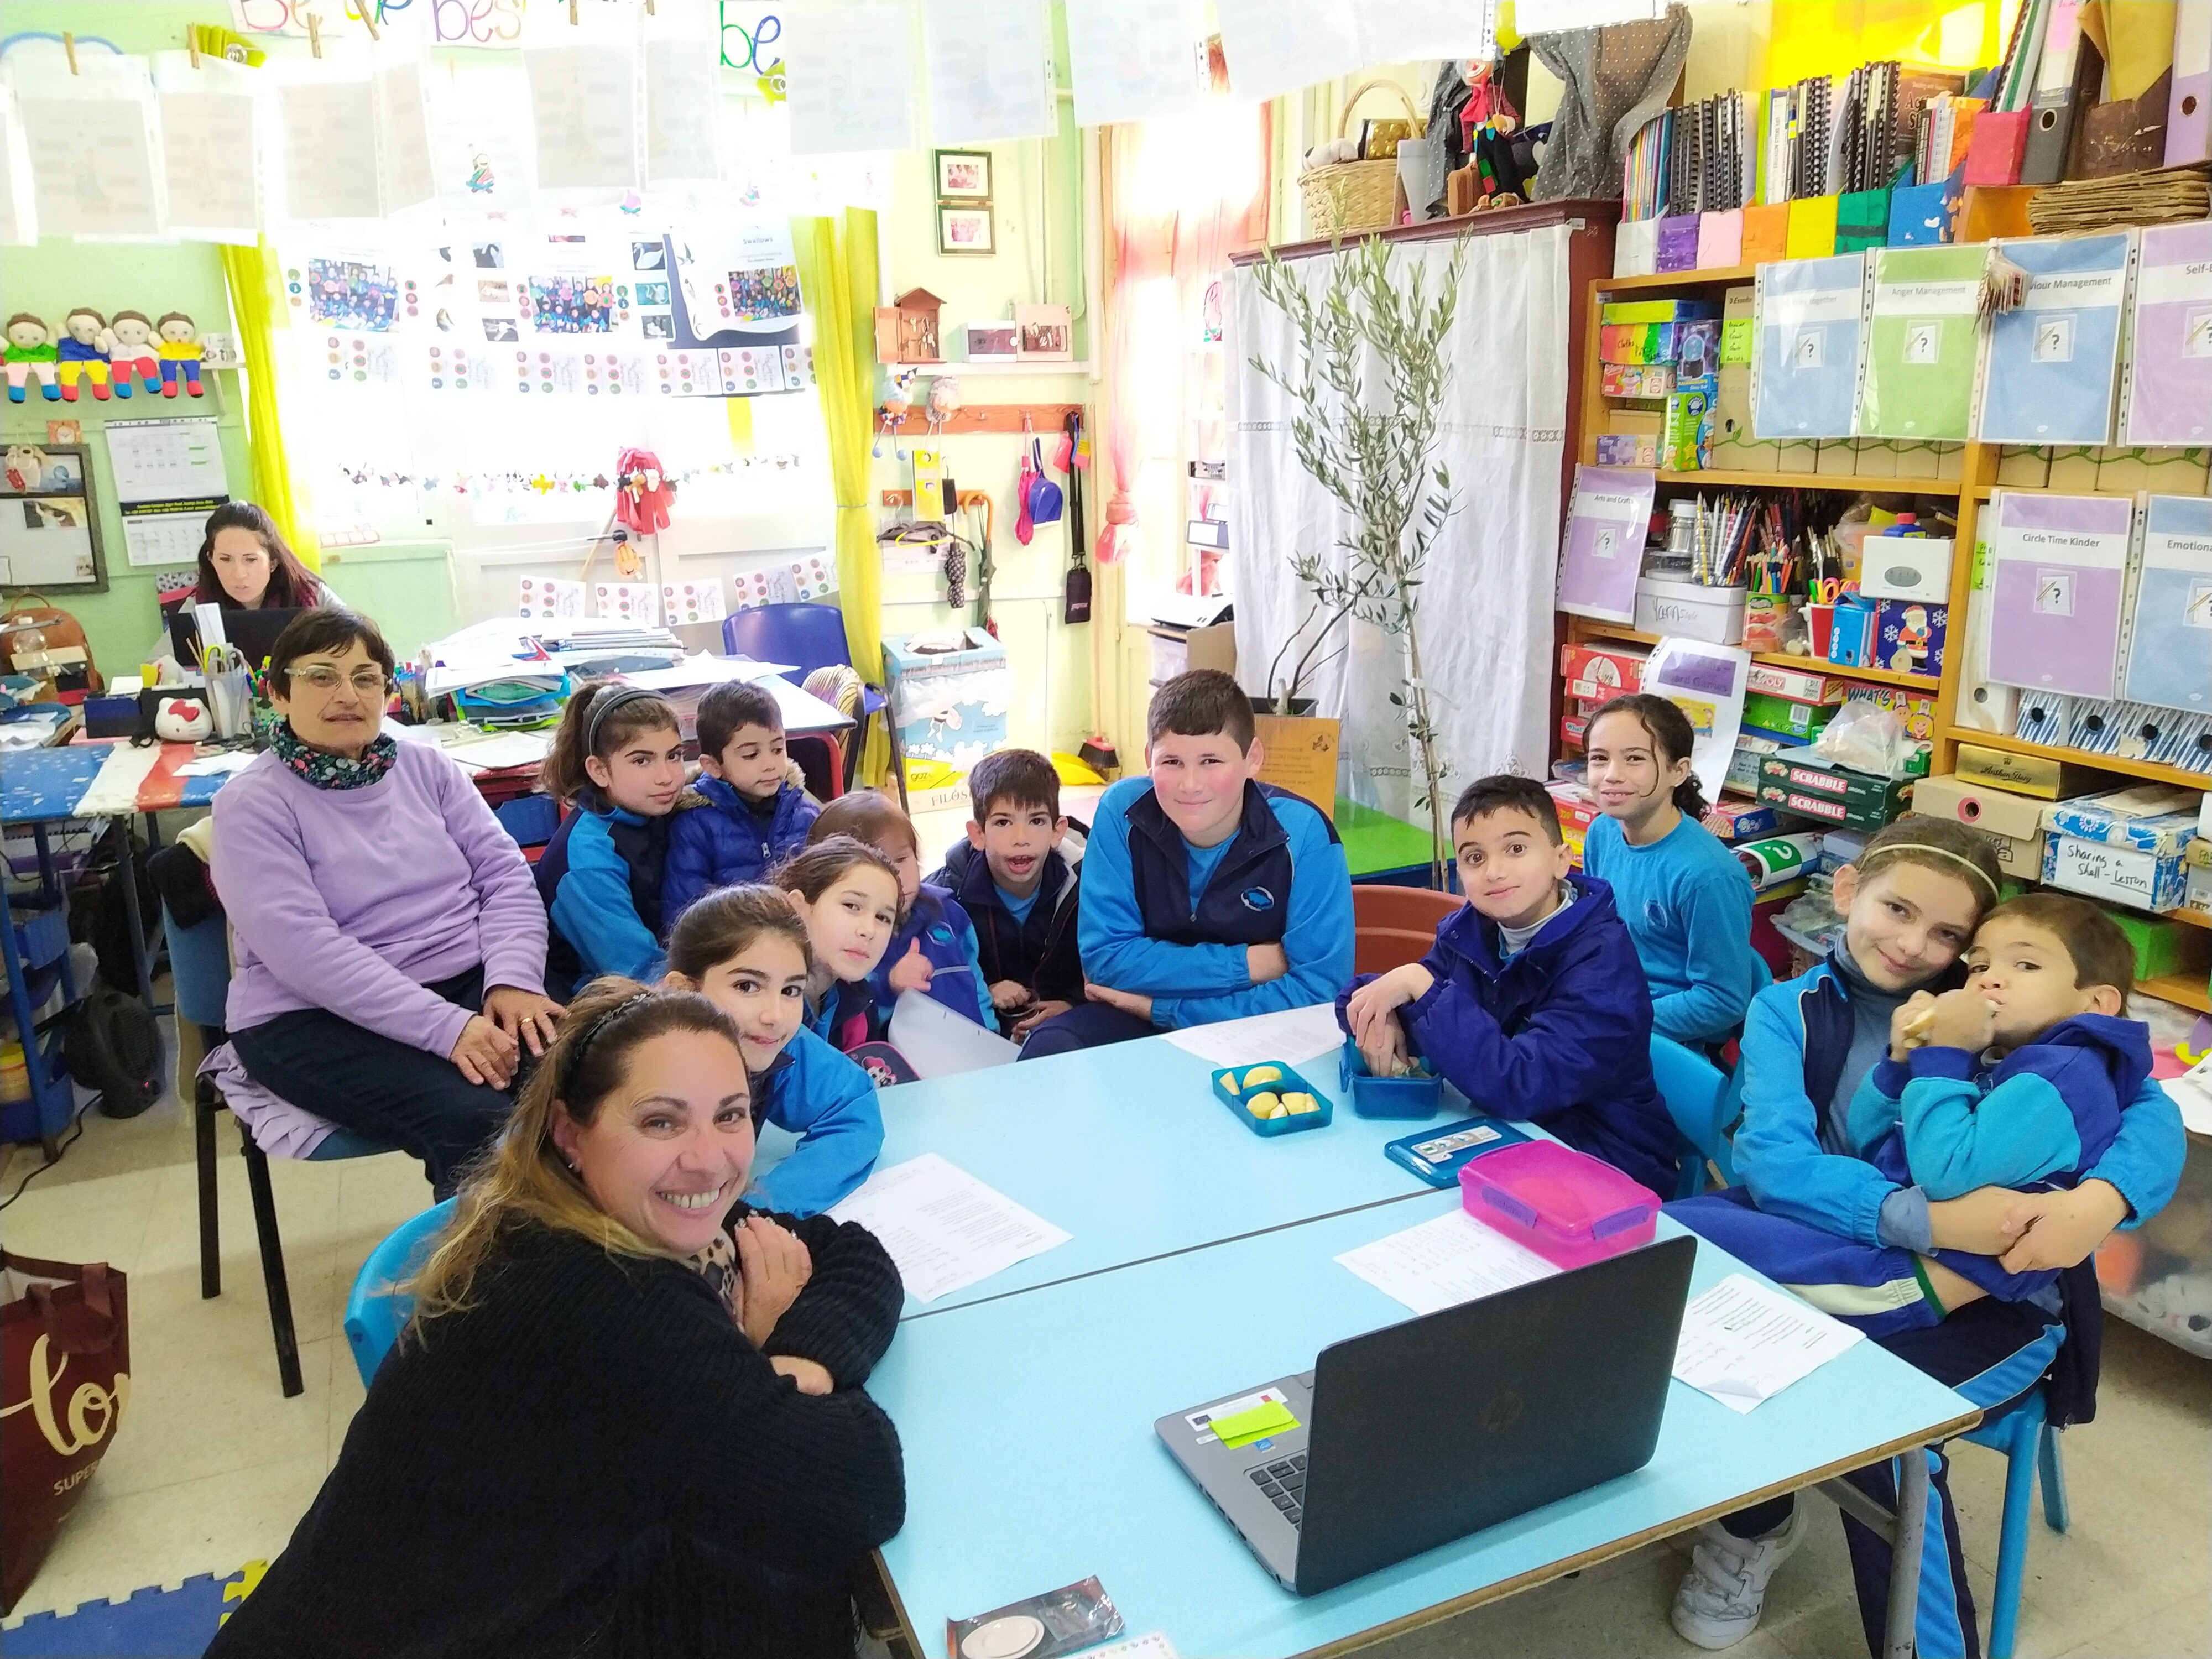 GLOBE students at Gozo College Rabat Primary School (Victoria, Gozo, Malta)